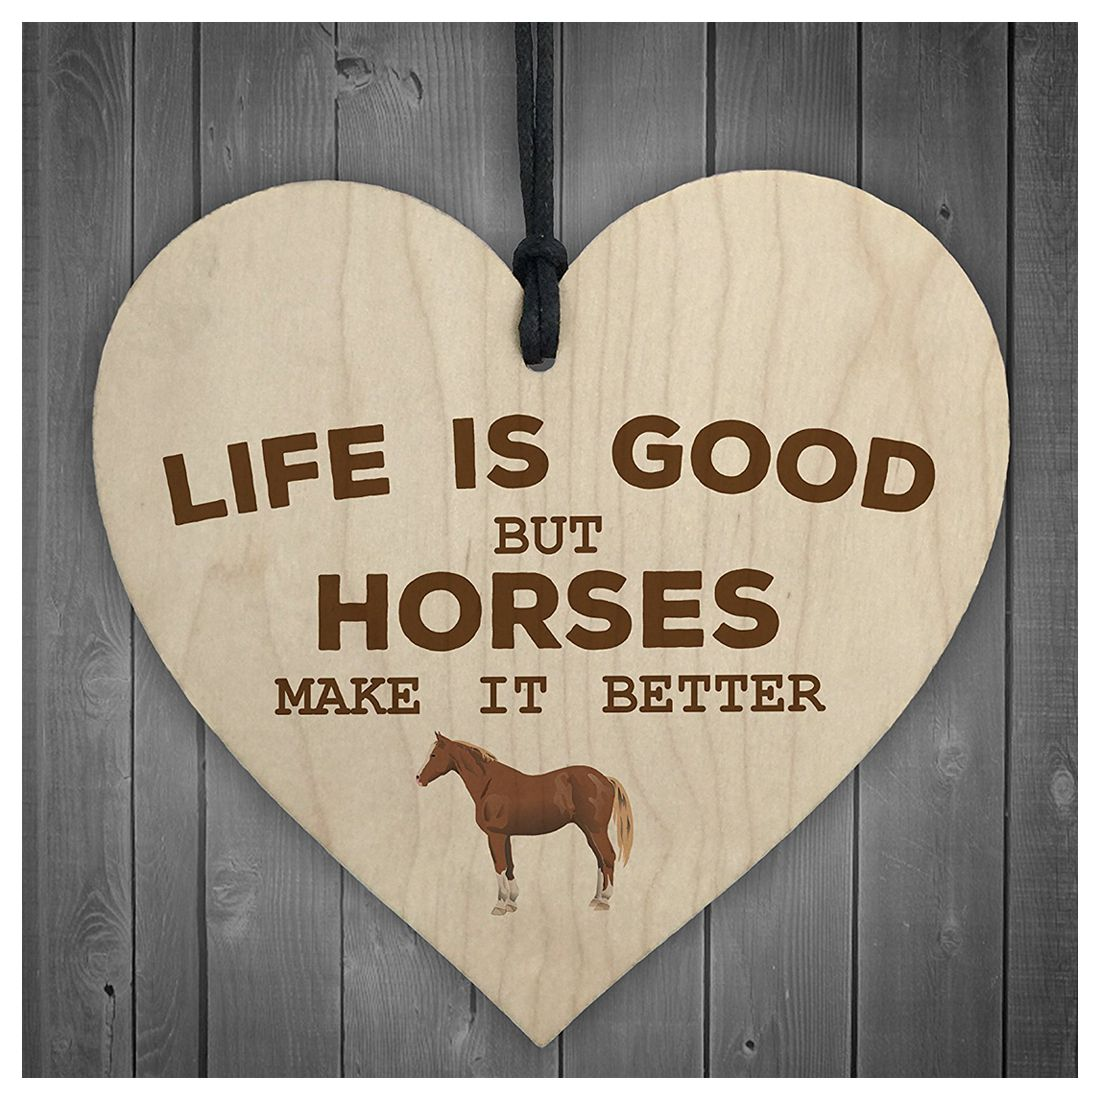 Horses Make Life Better Wooden Hanging Heart Plaque Horse Lovers Stable Sign New